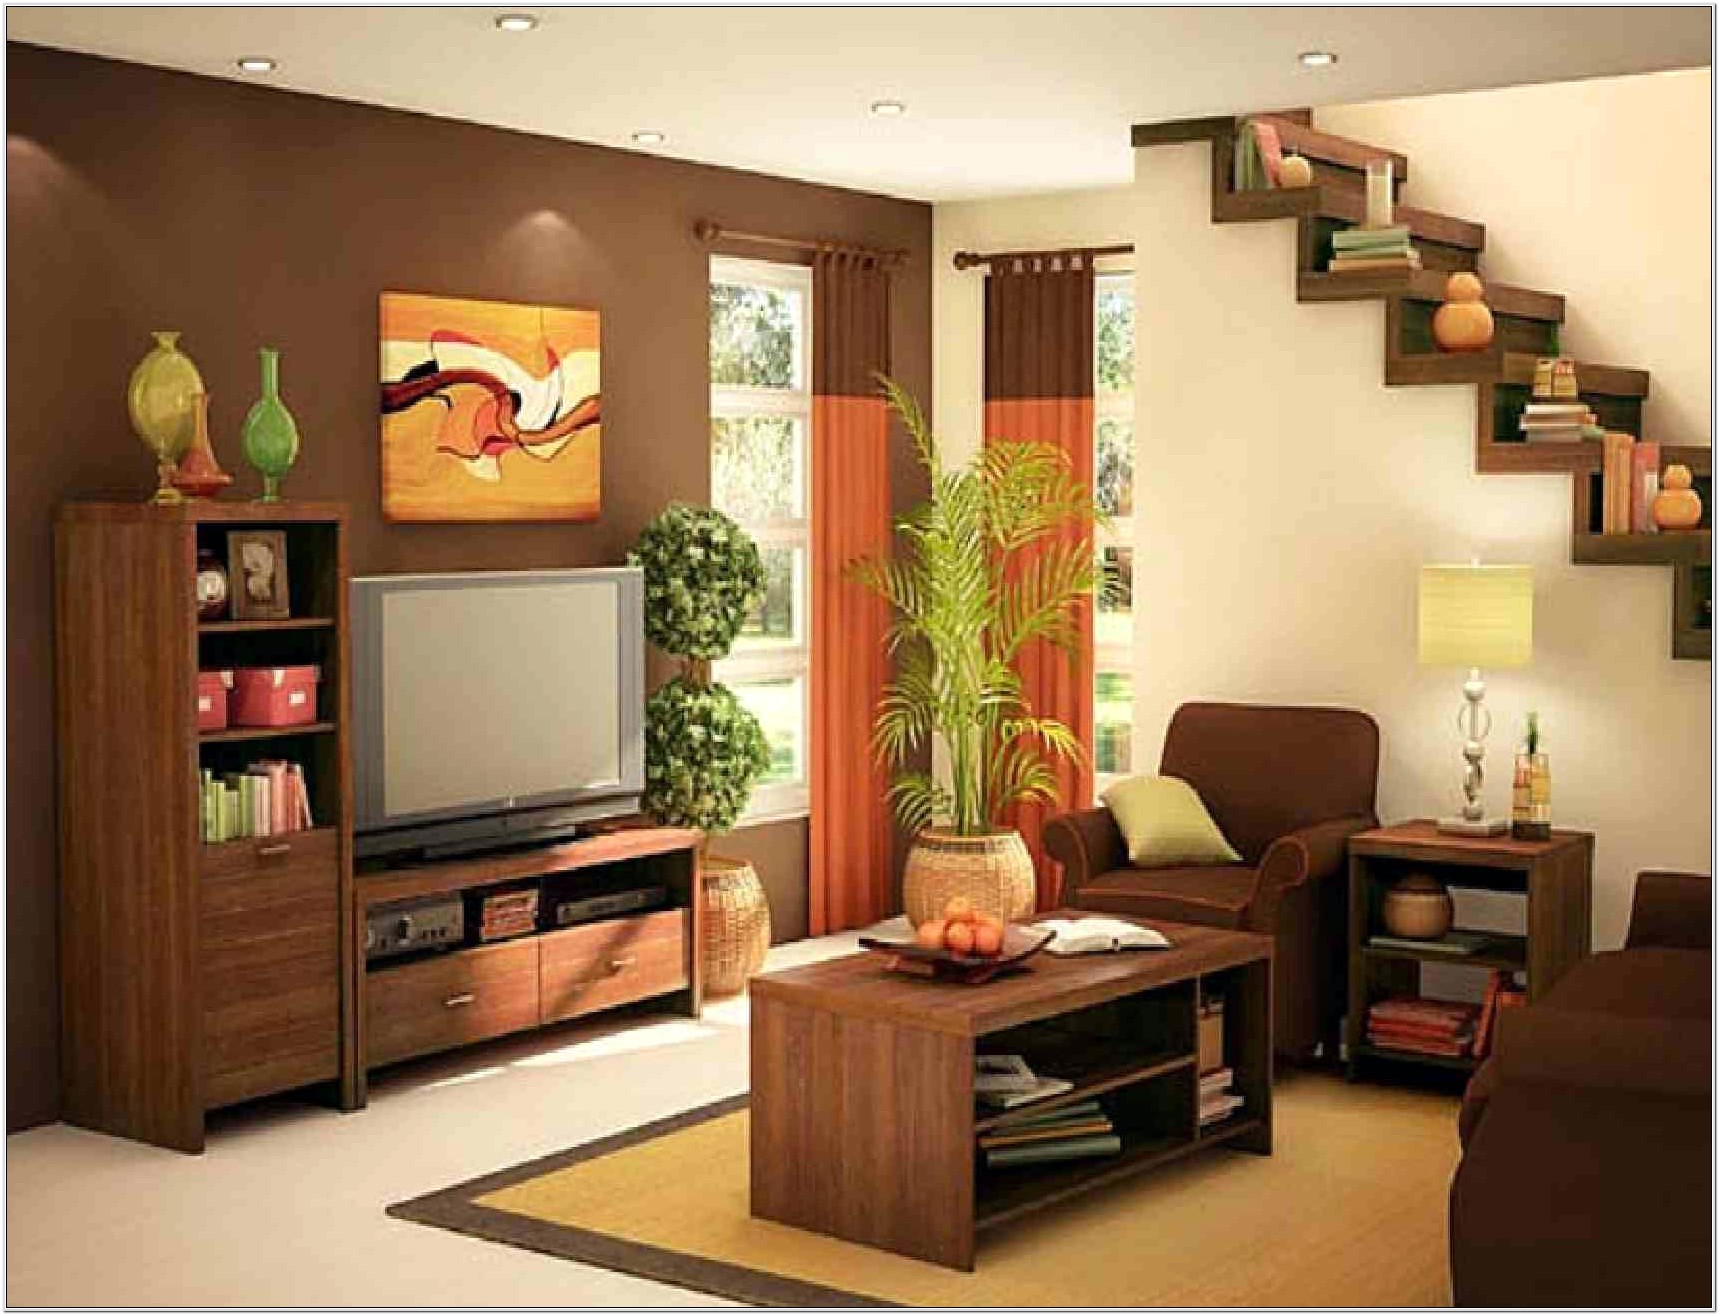 Small And Simple Living Room Designs India Small Living Room Interior Design Photos India Living Room